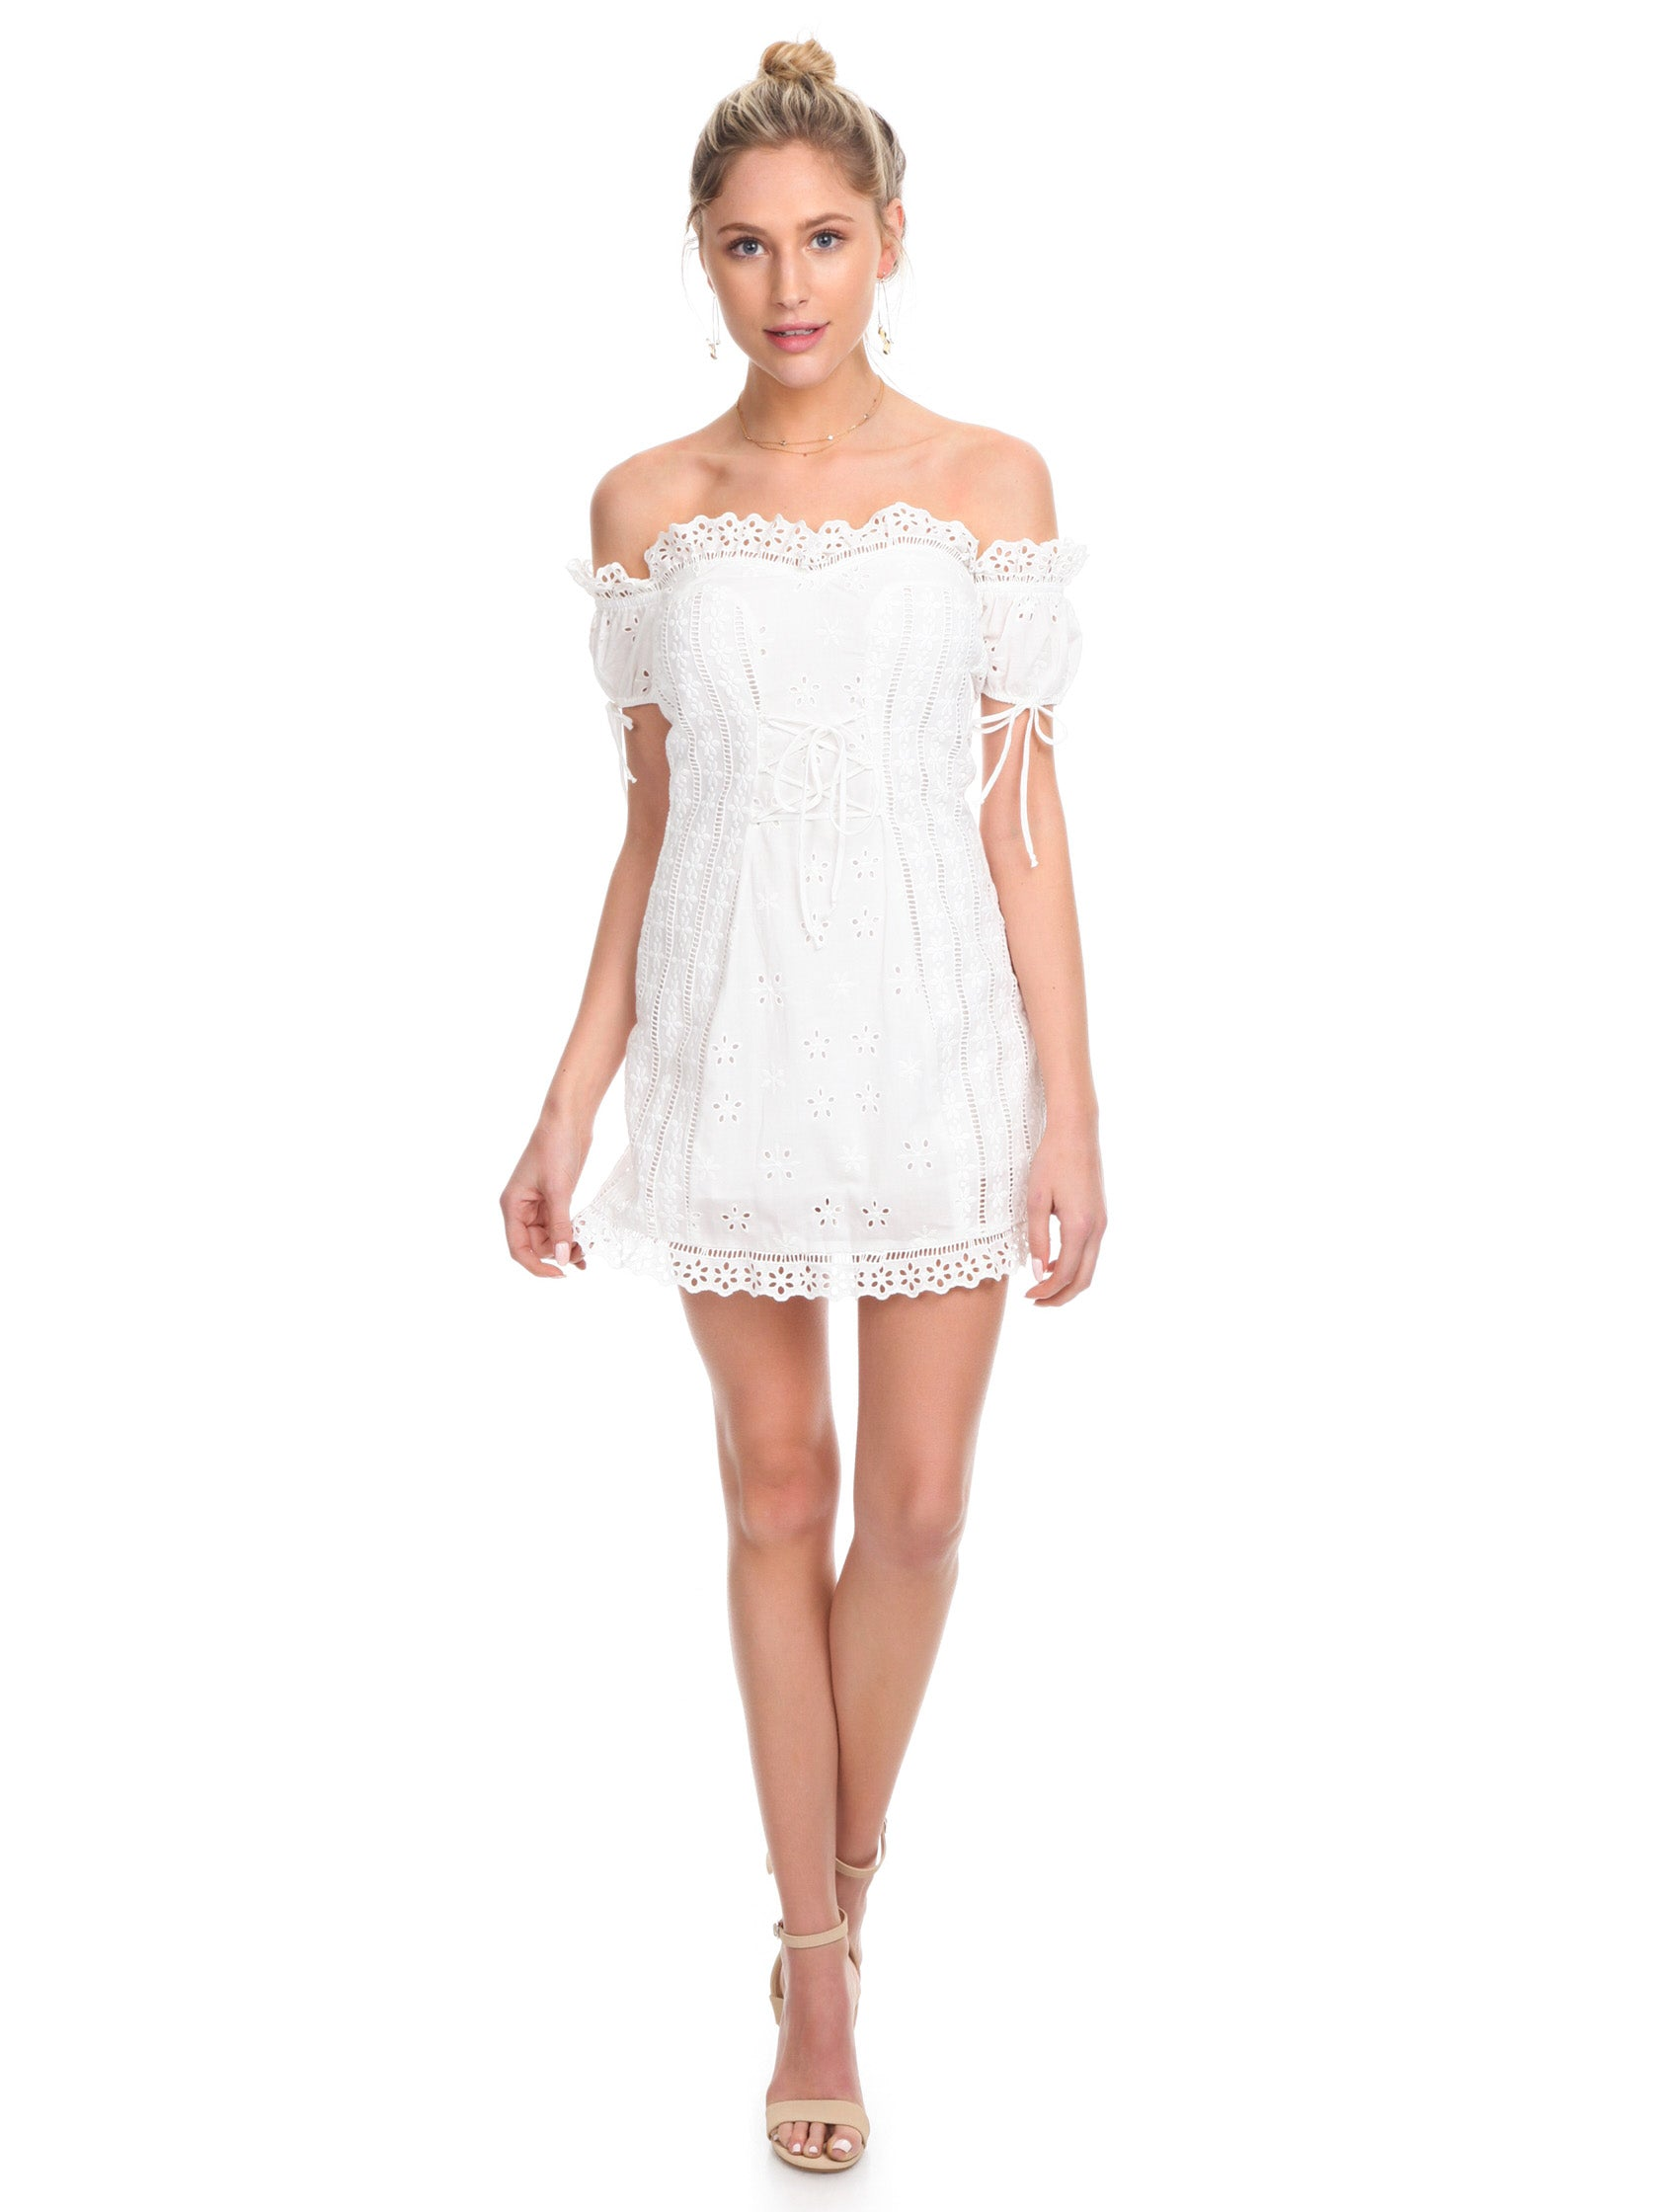 Girl outfit in a dress rental from For Love & Lemons called Anabelle Eyelet Lace Up Dress